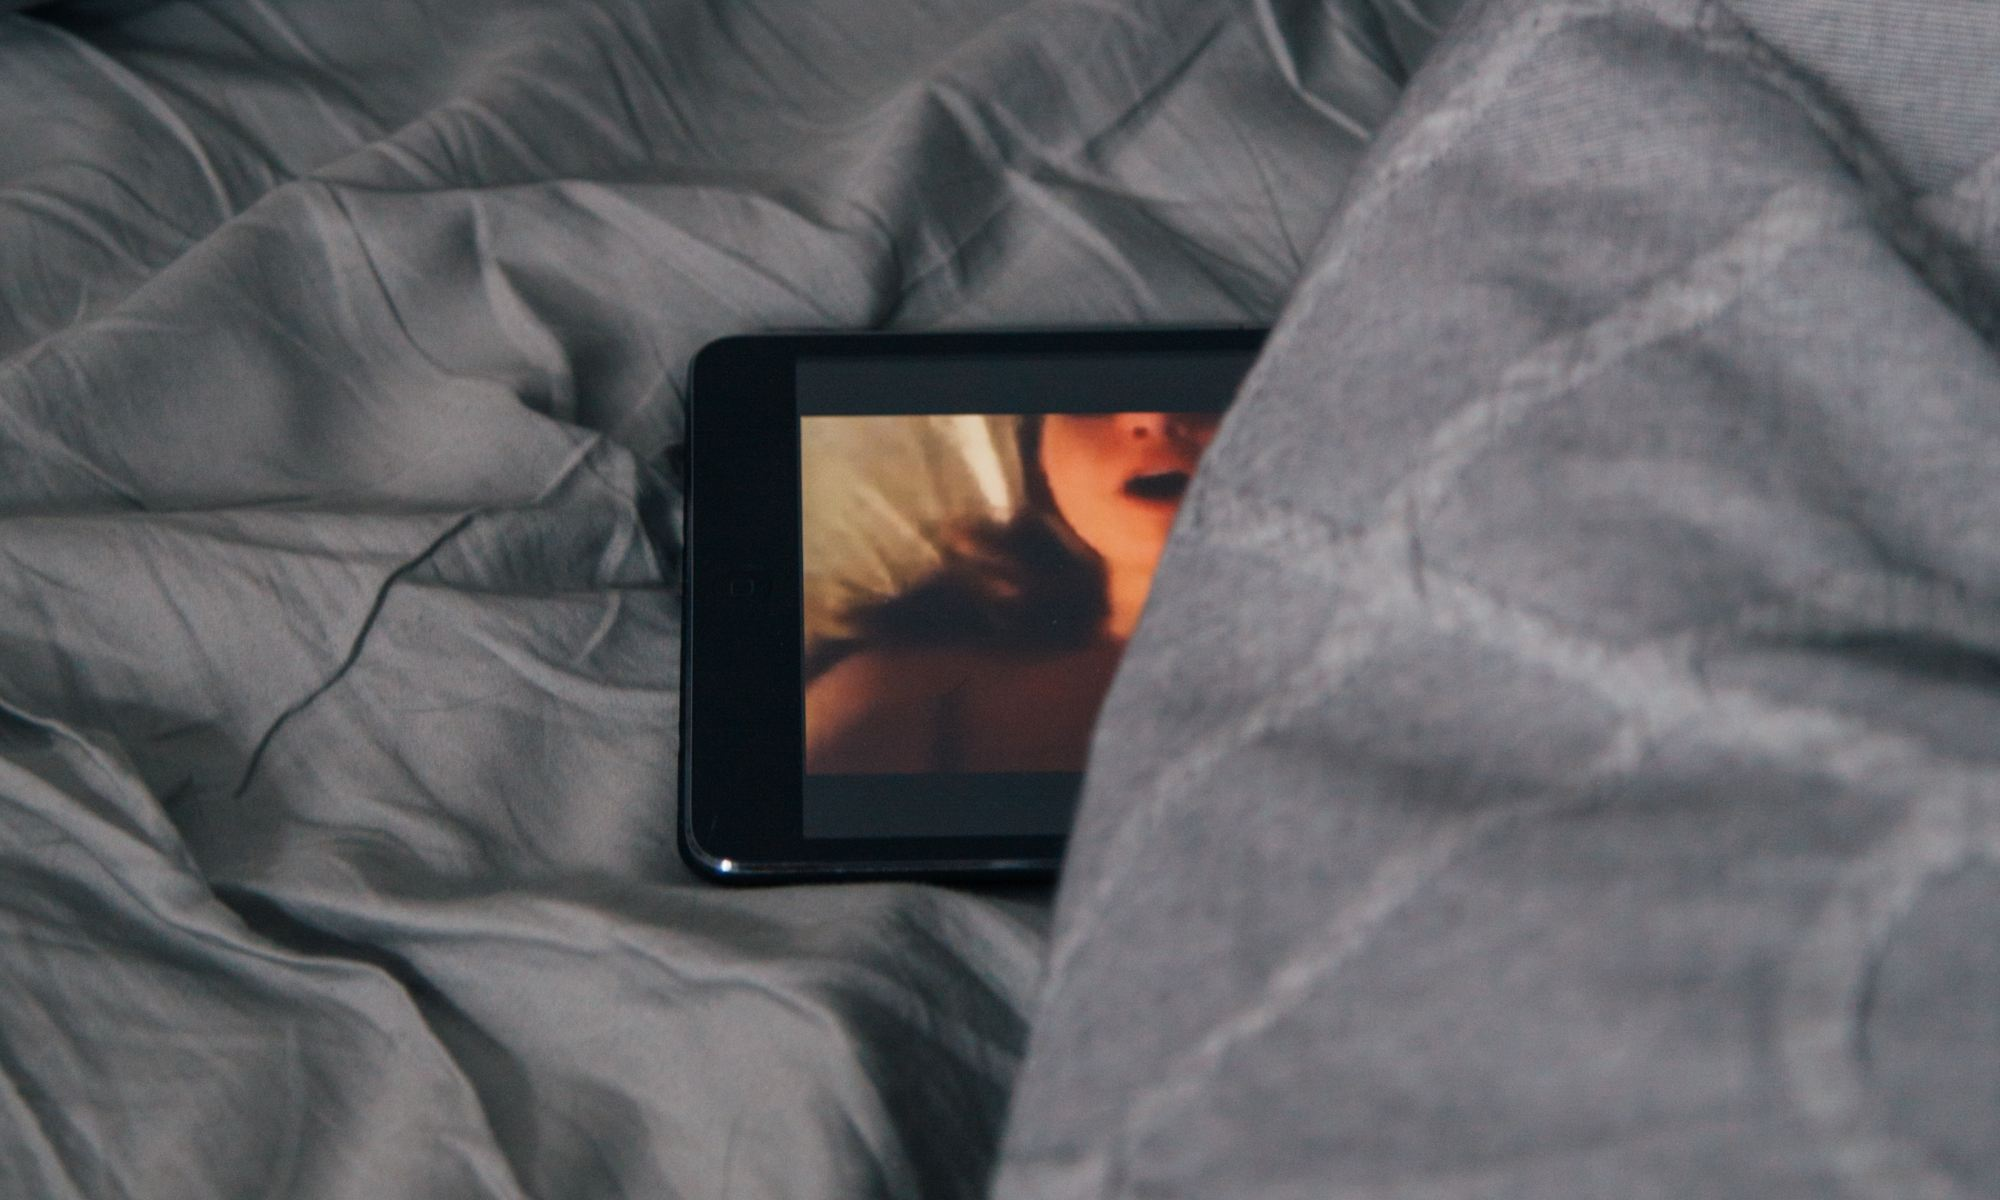 Porn playing on black Android smartphone on gray bed sheet